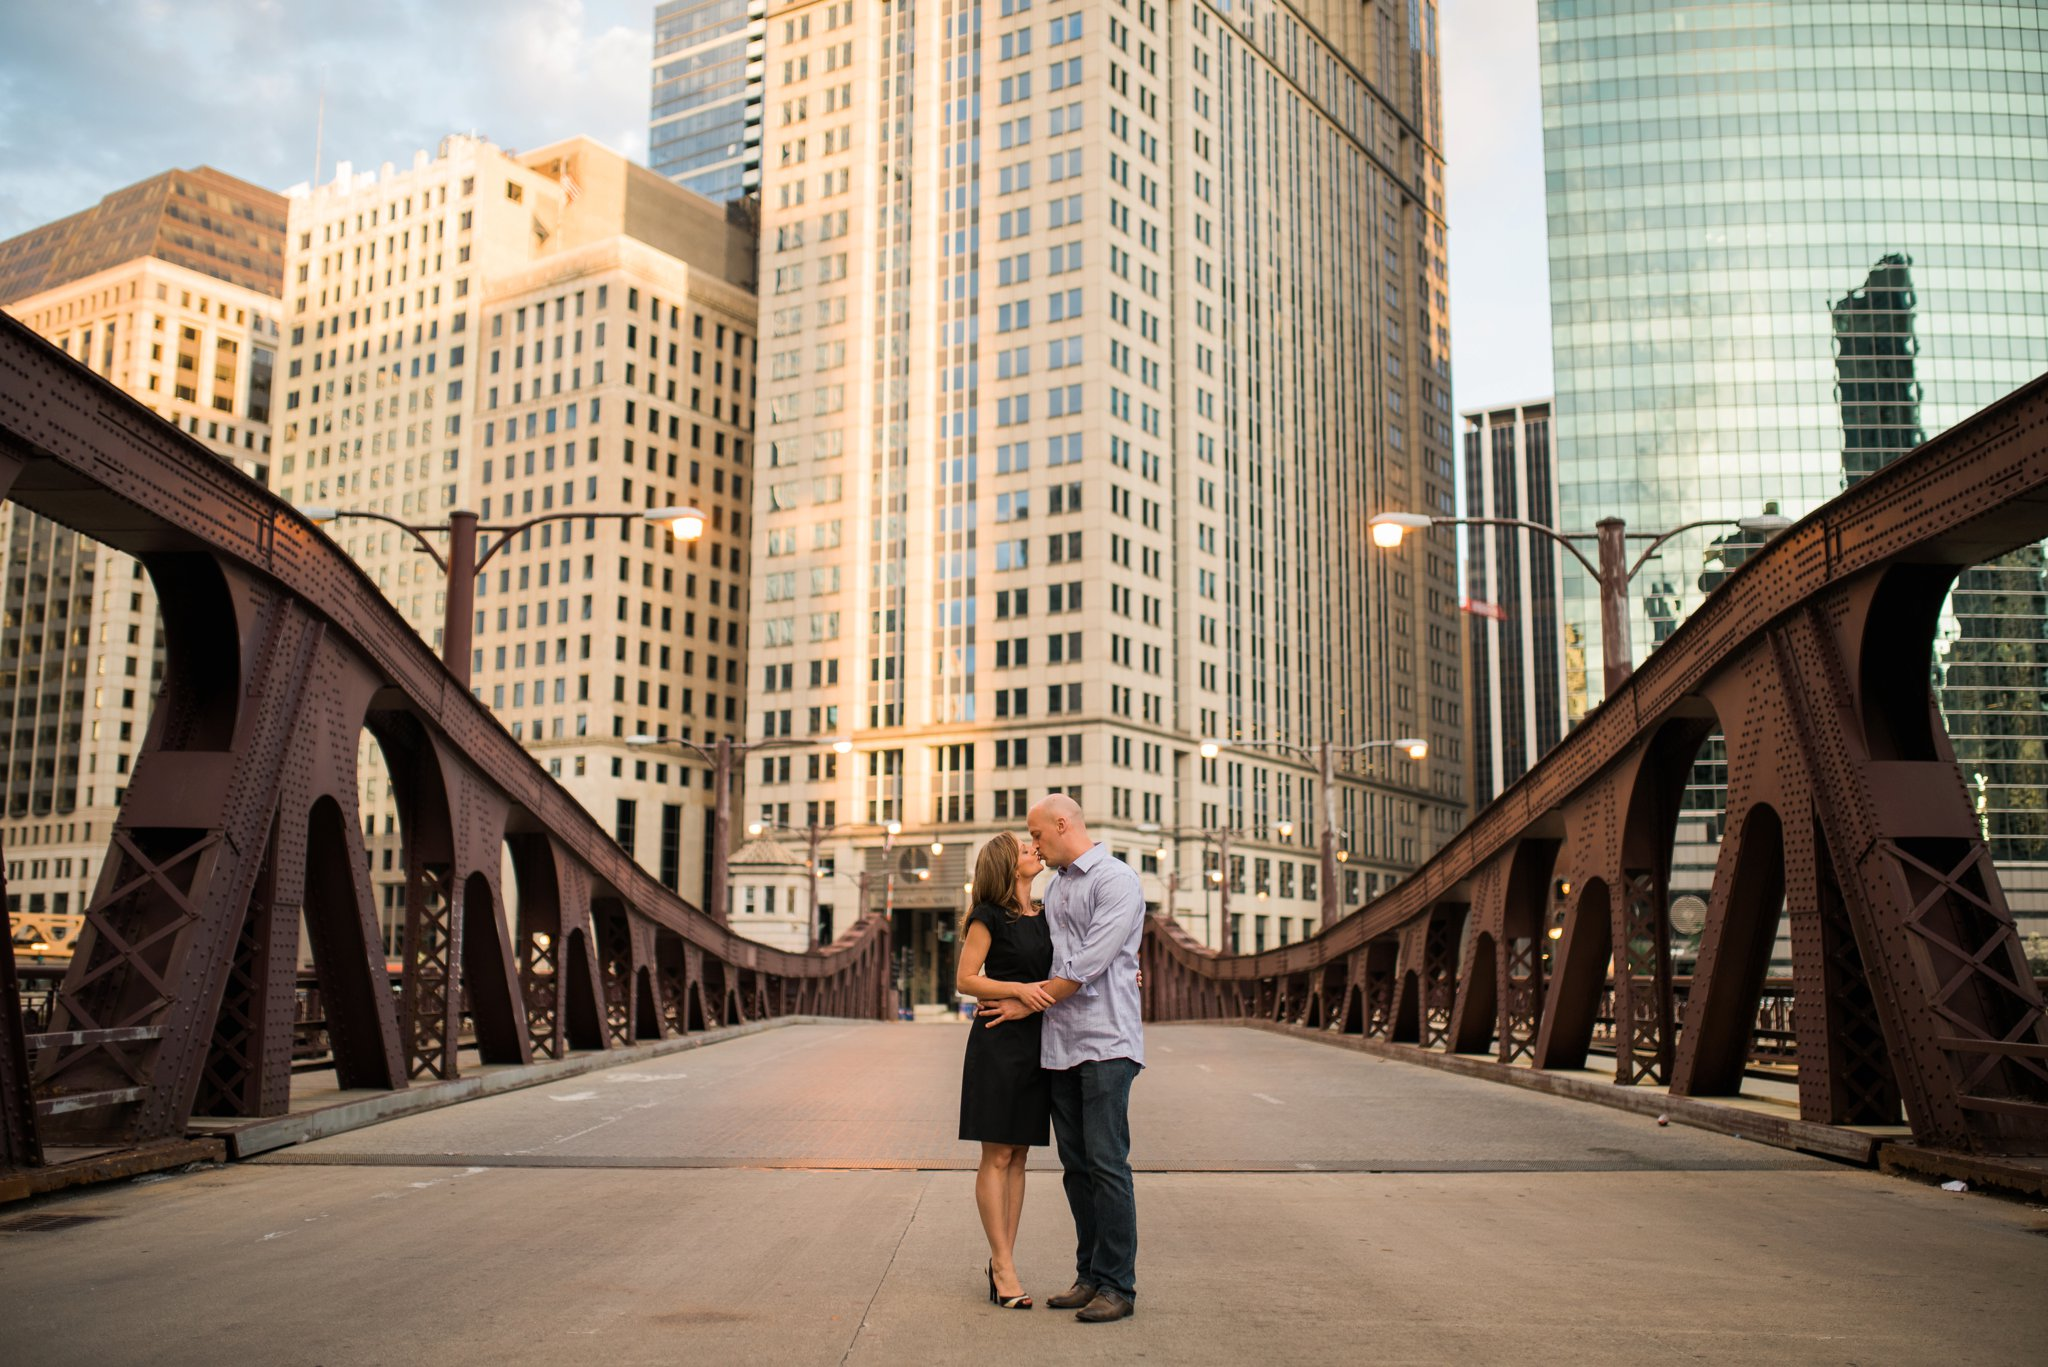 Downtown-Chicago-Loop-Wedding-Photography-030.jpg